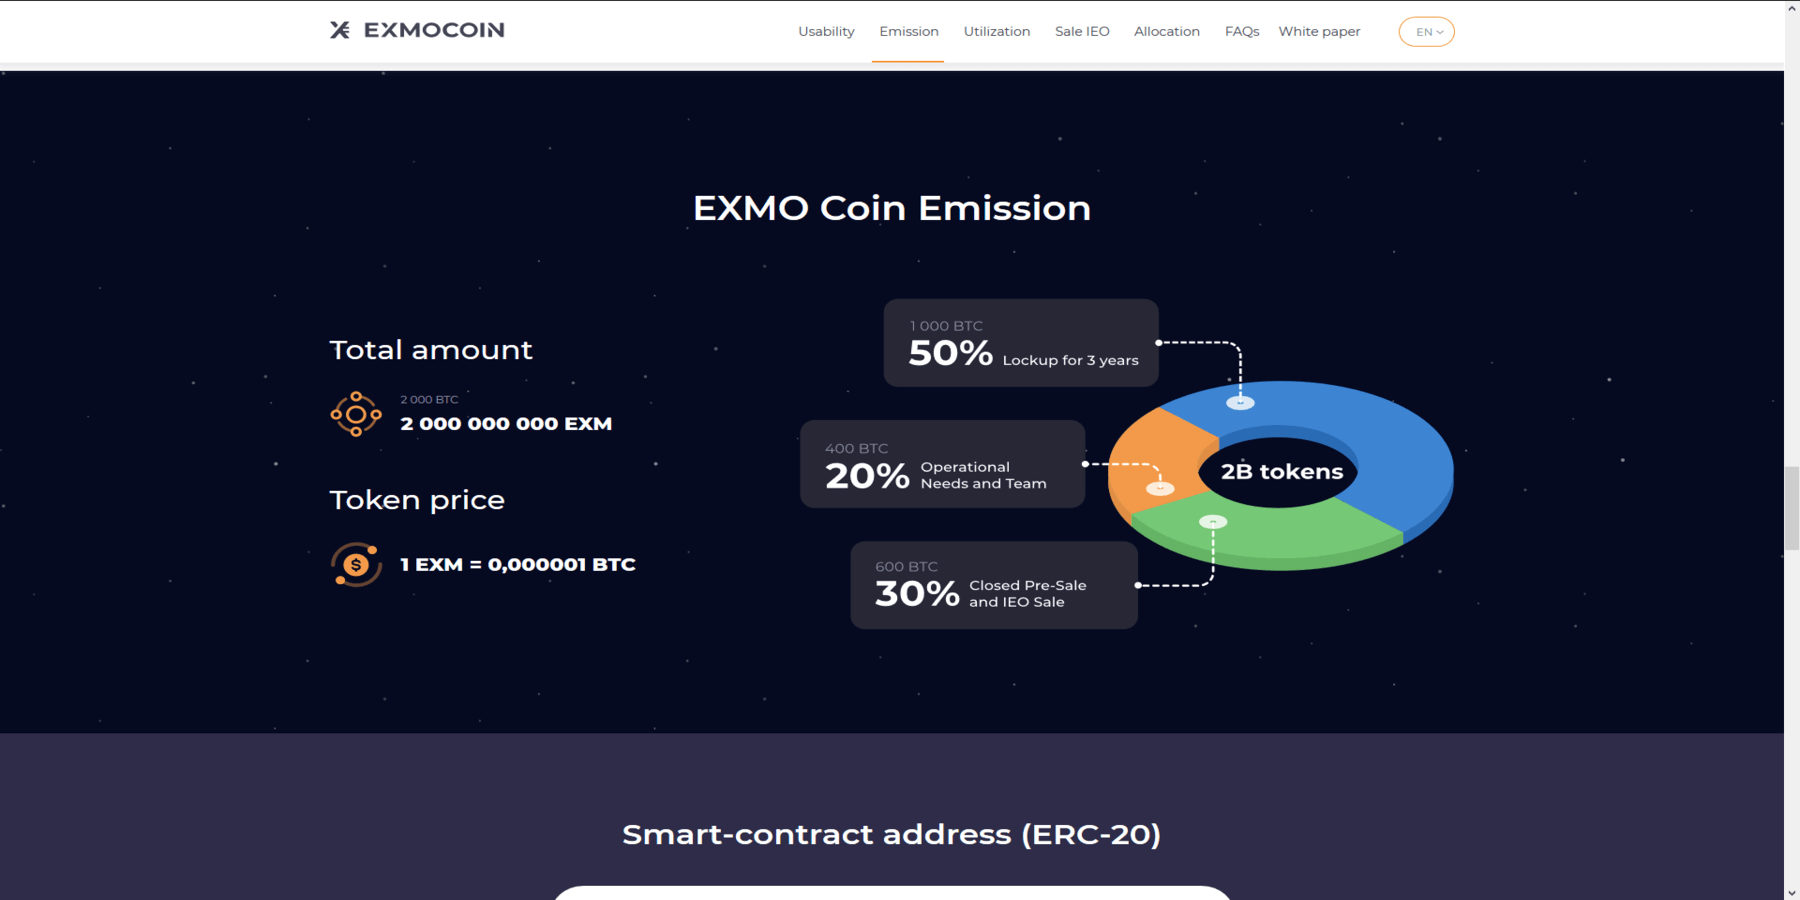 Exmo coin details